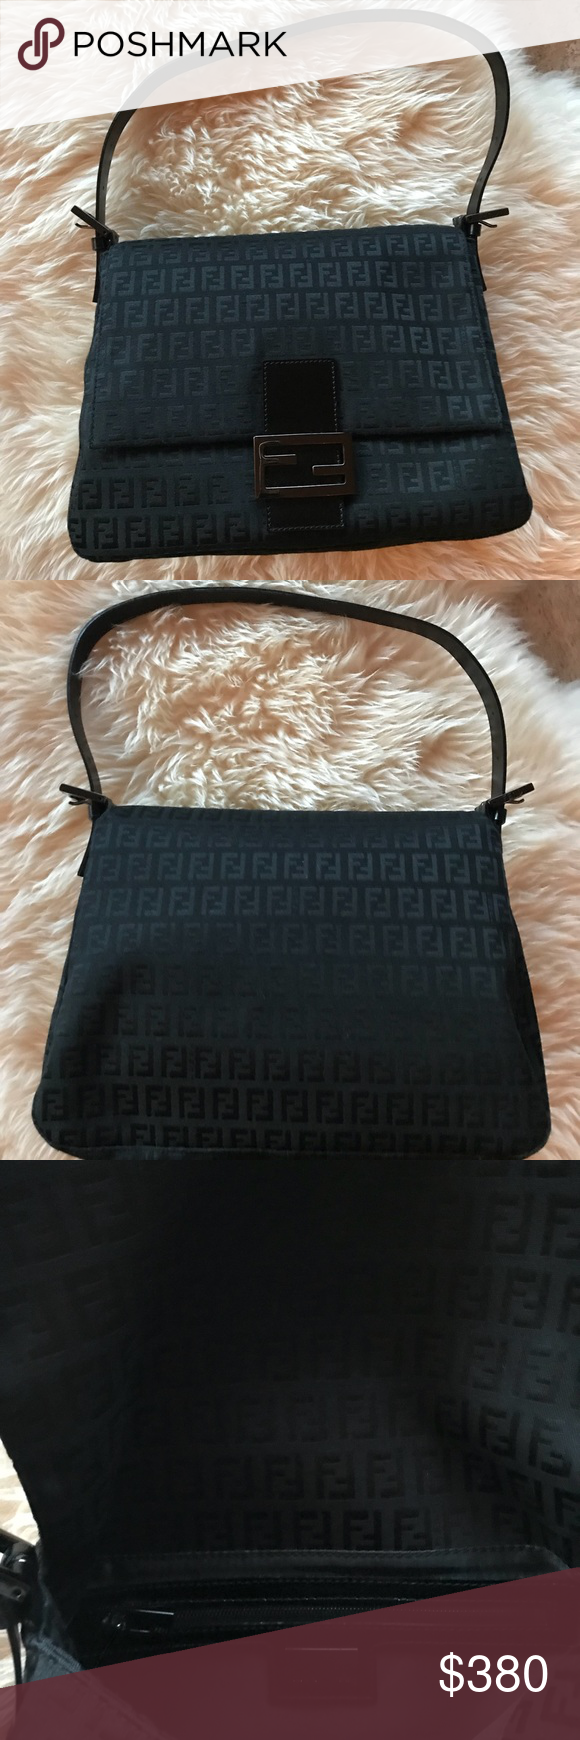 678e7edbdbd2 Fendi Black Zucca Print Mama Forever Bag • 100% authentic • condition  like  new (carried once!) • includes dust bag  feel free to ask questions! Fendi  Bags